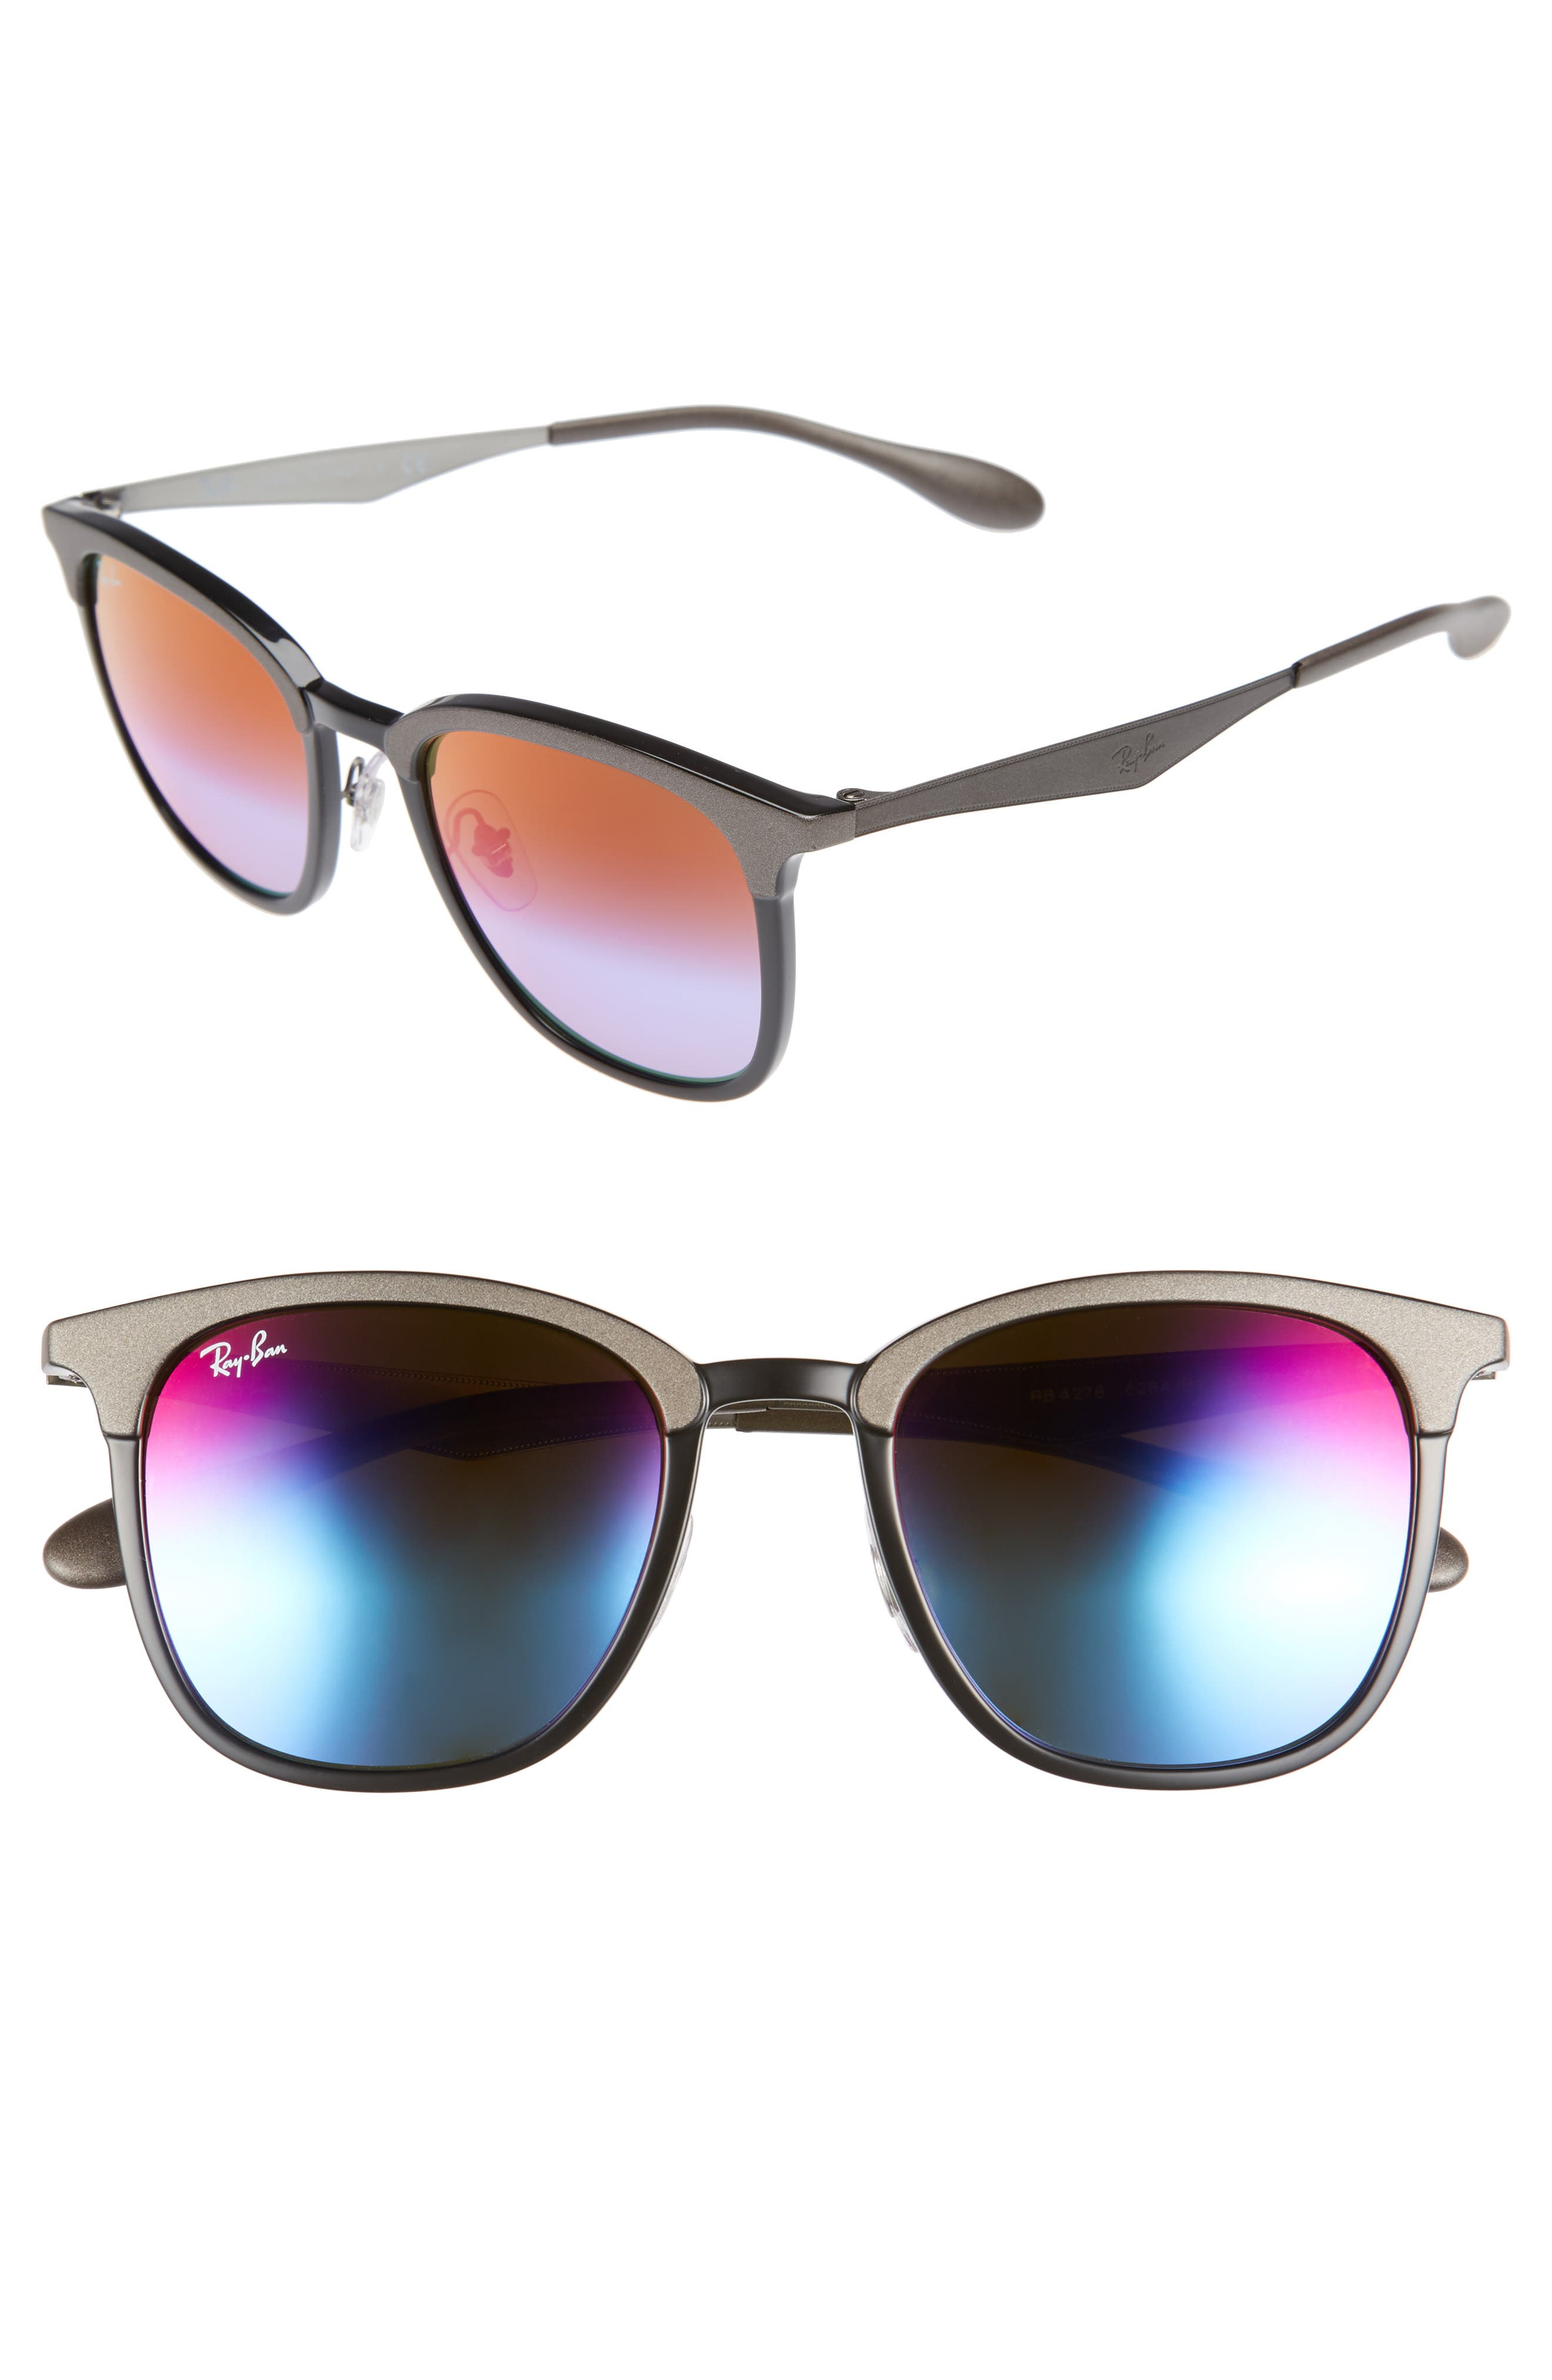 RAY-BAN Highstreet 51mm Sunglasses